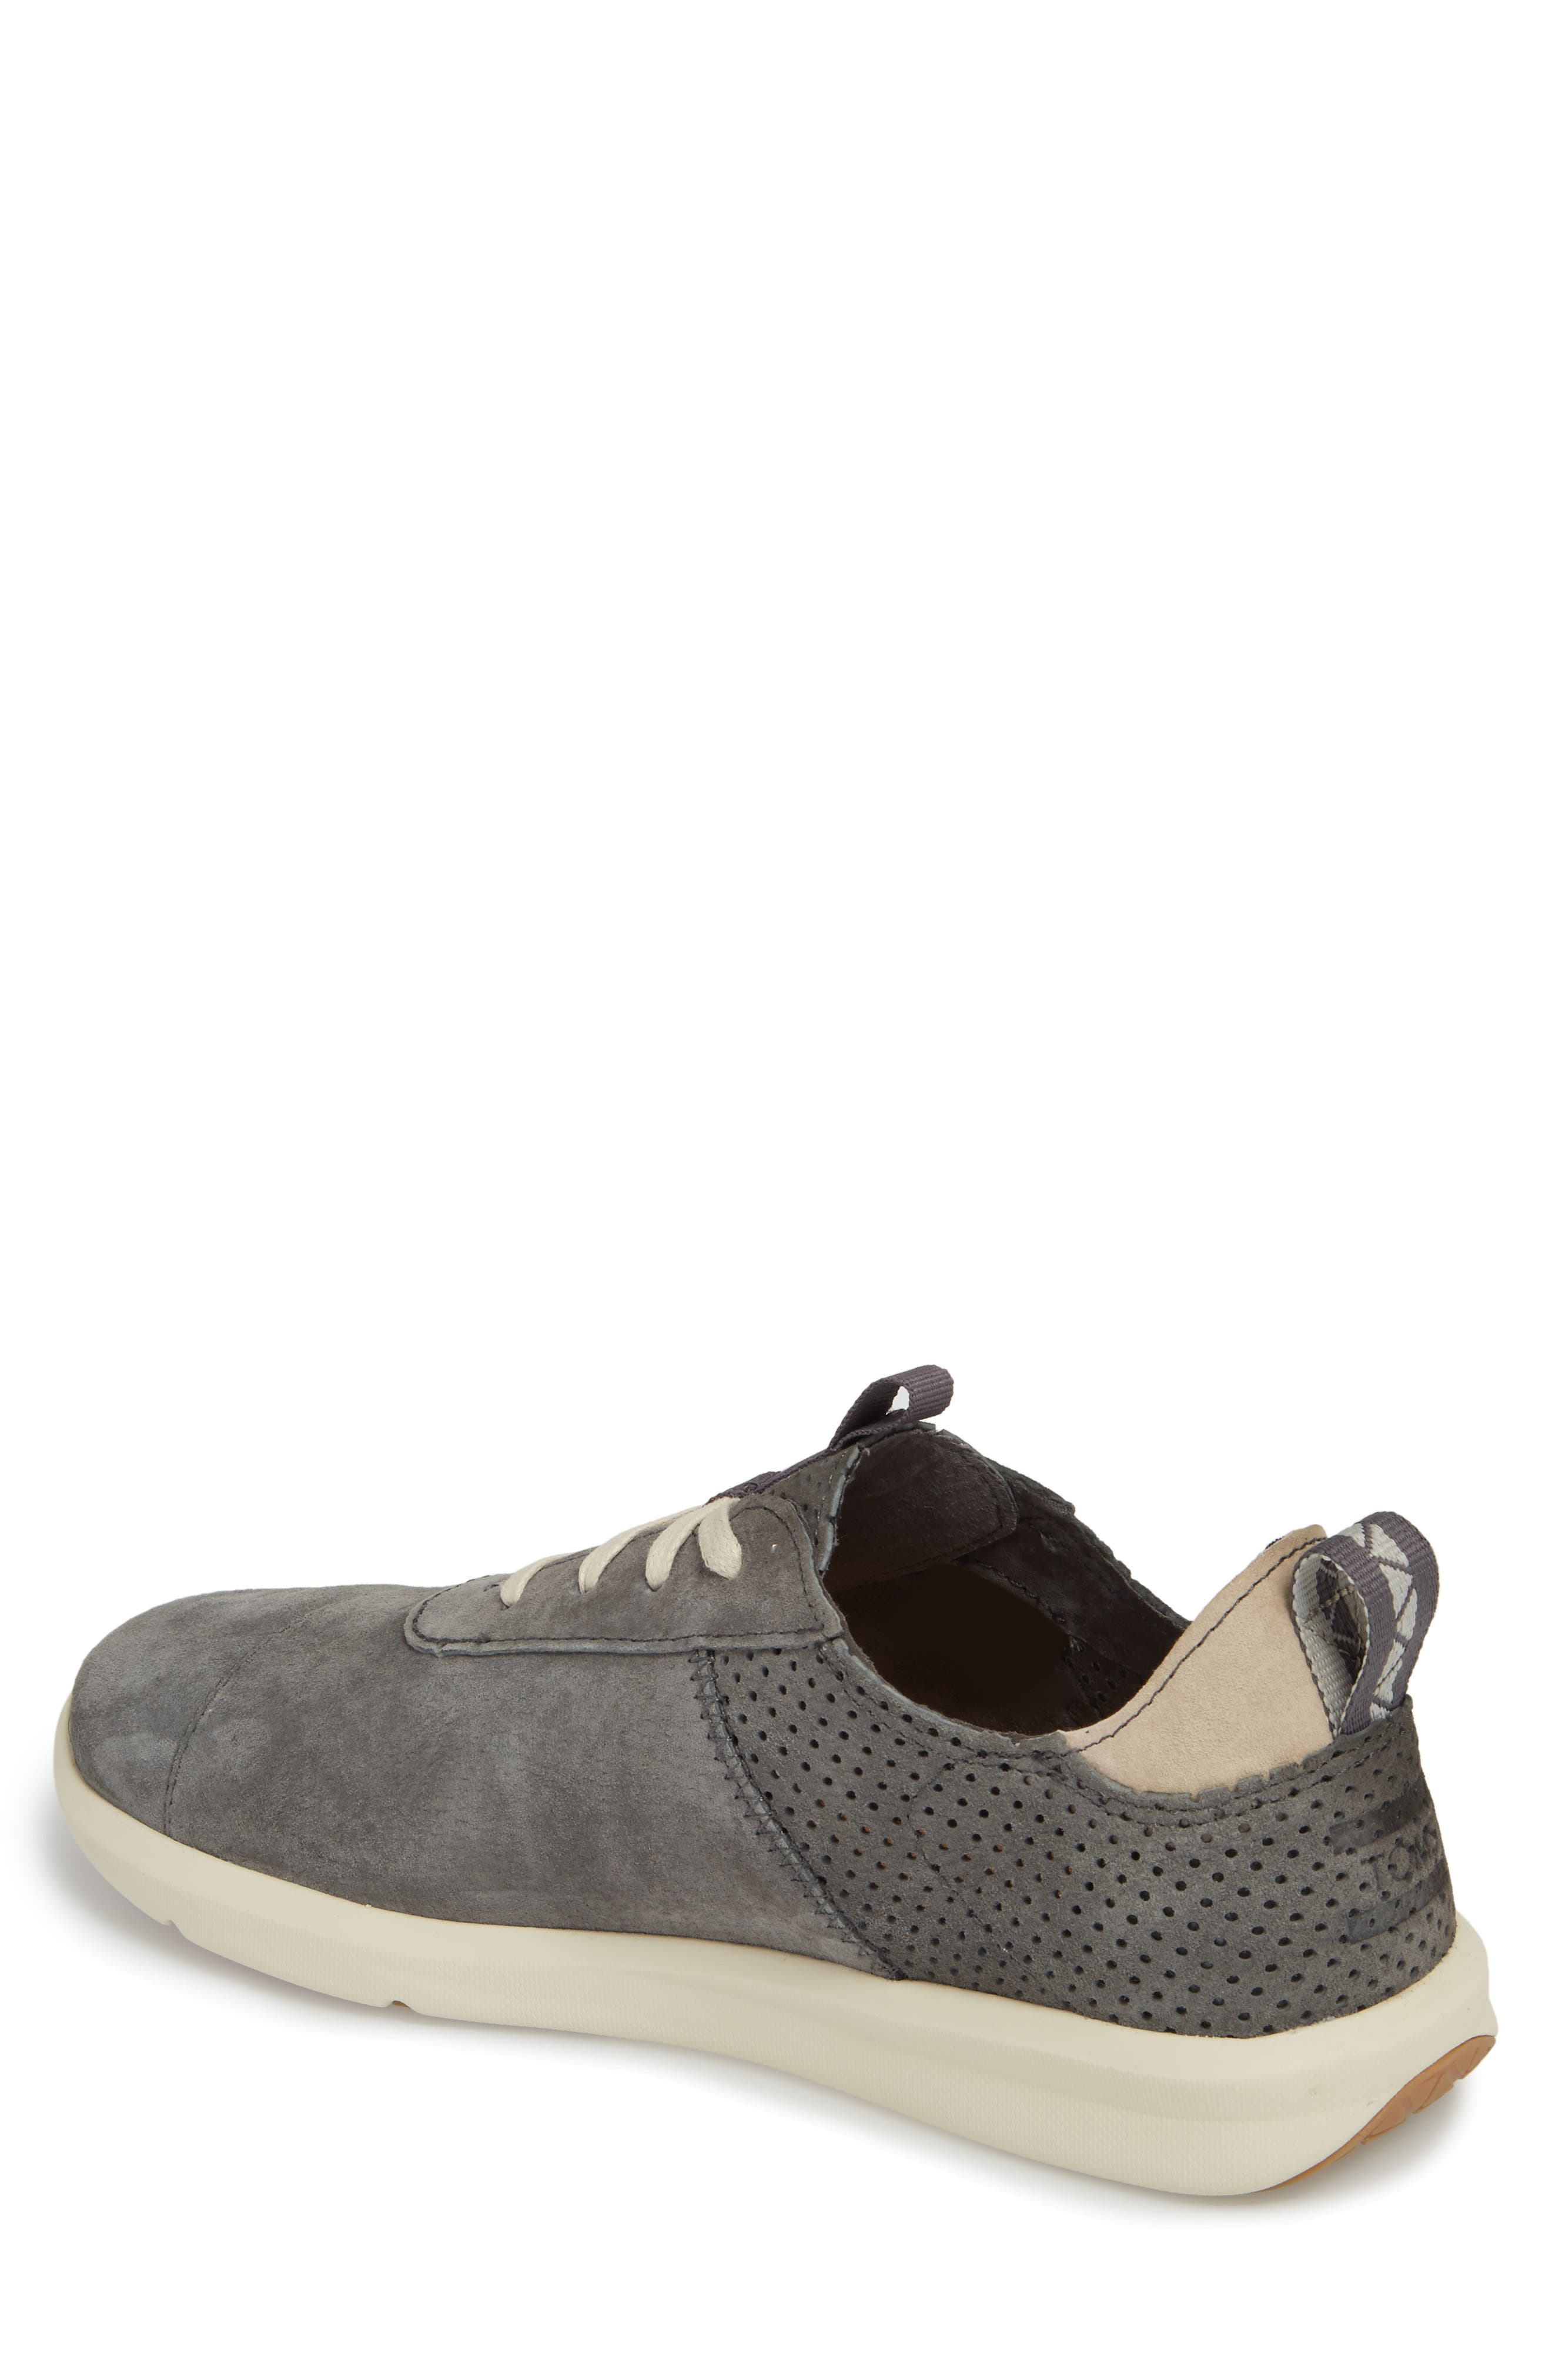 Cabrillo Perforated Low Top Sneaker,                             Alternate thumbnail 2, color,                             Shade Suede